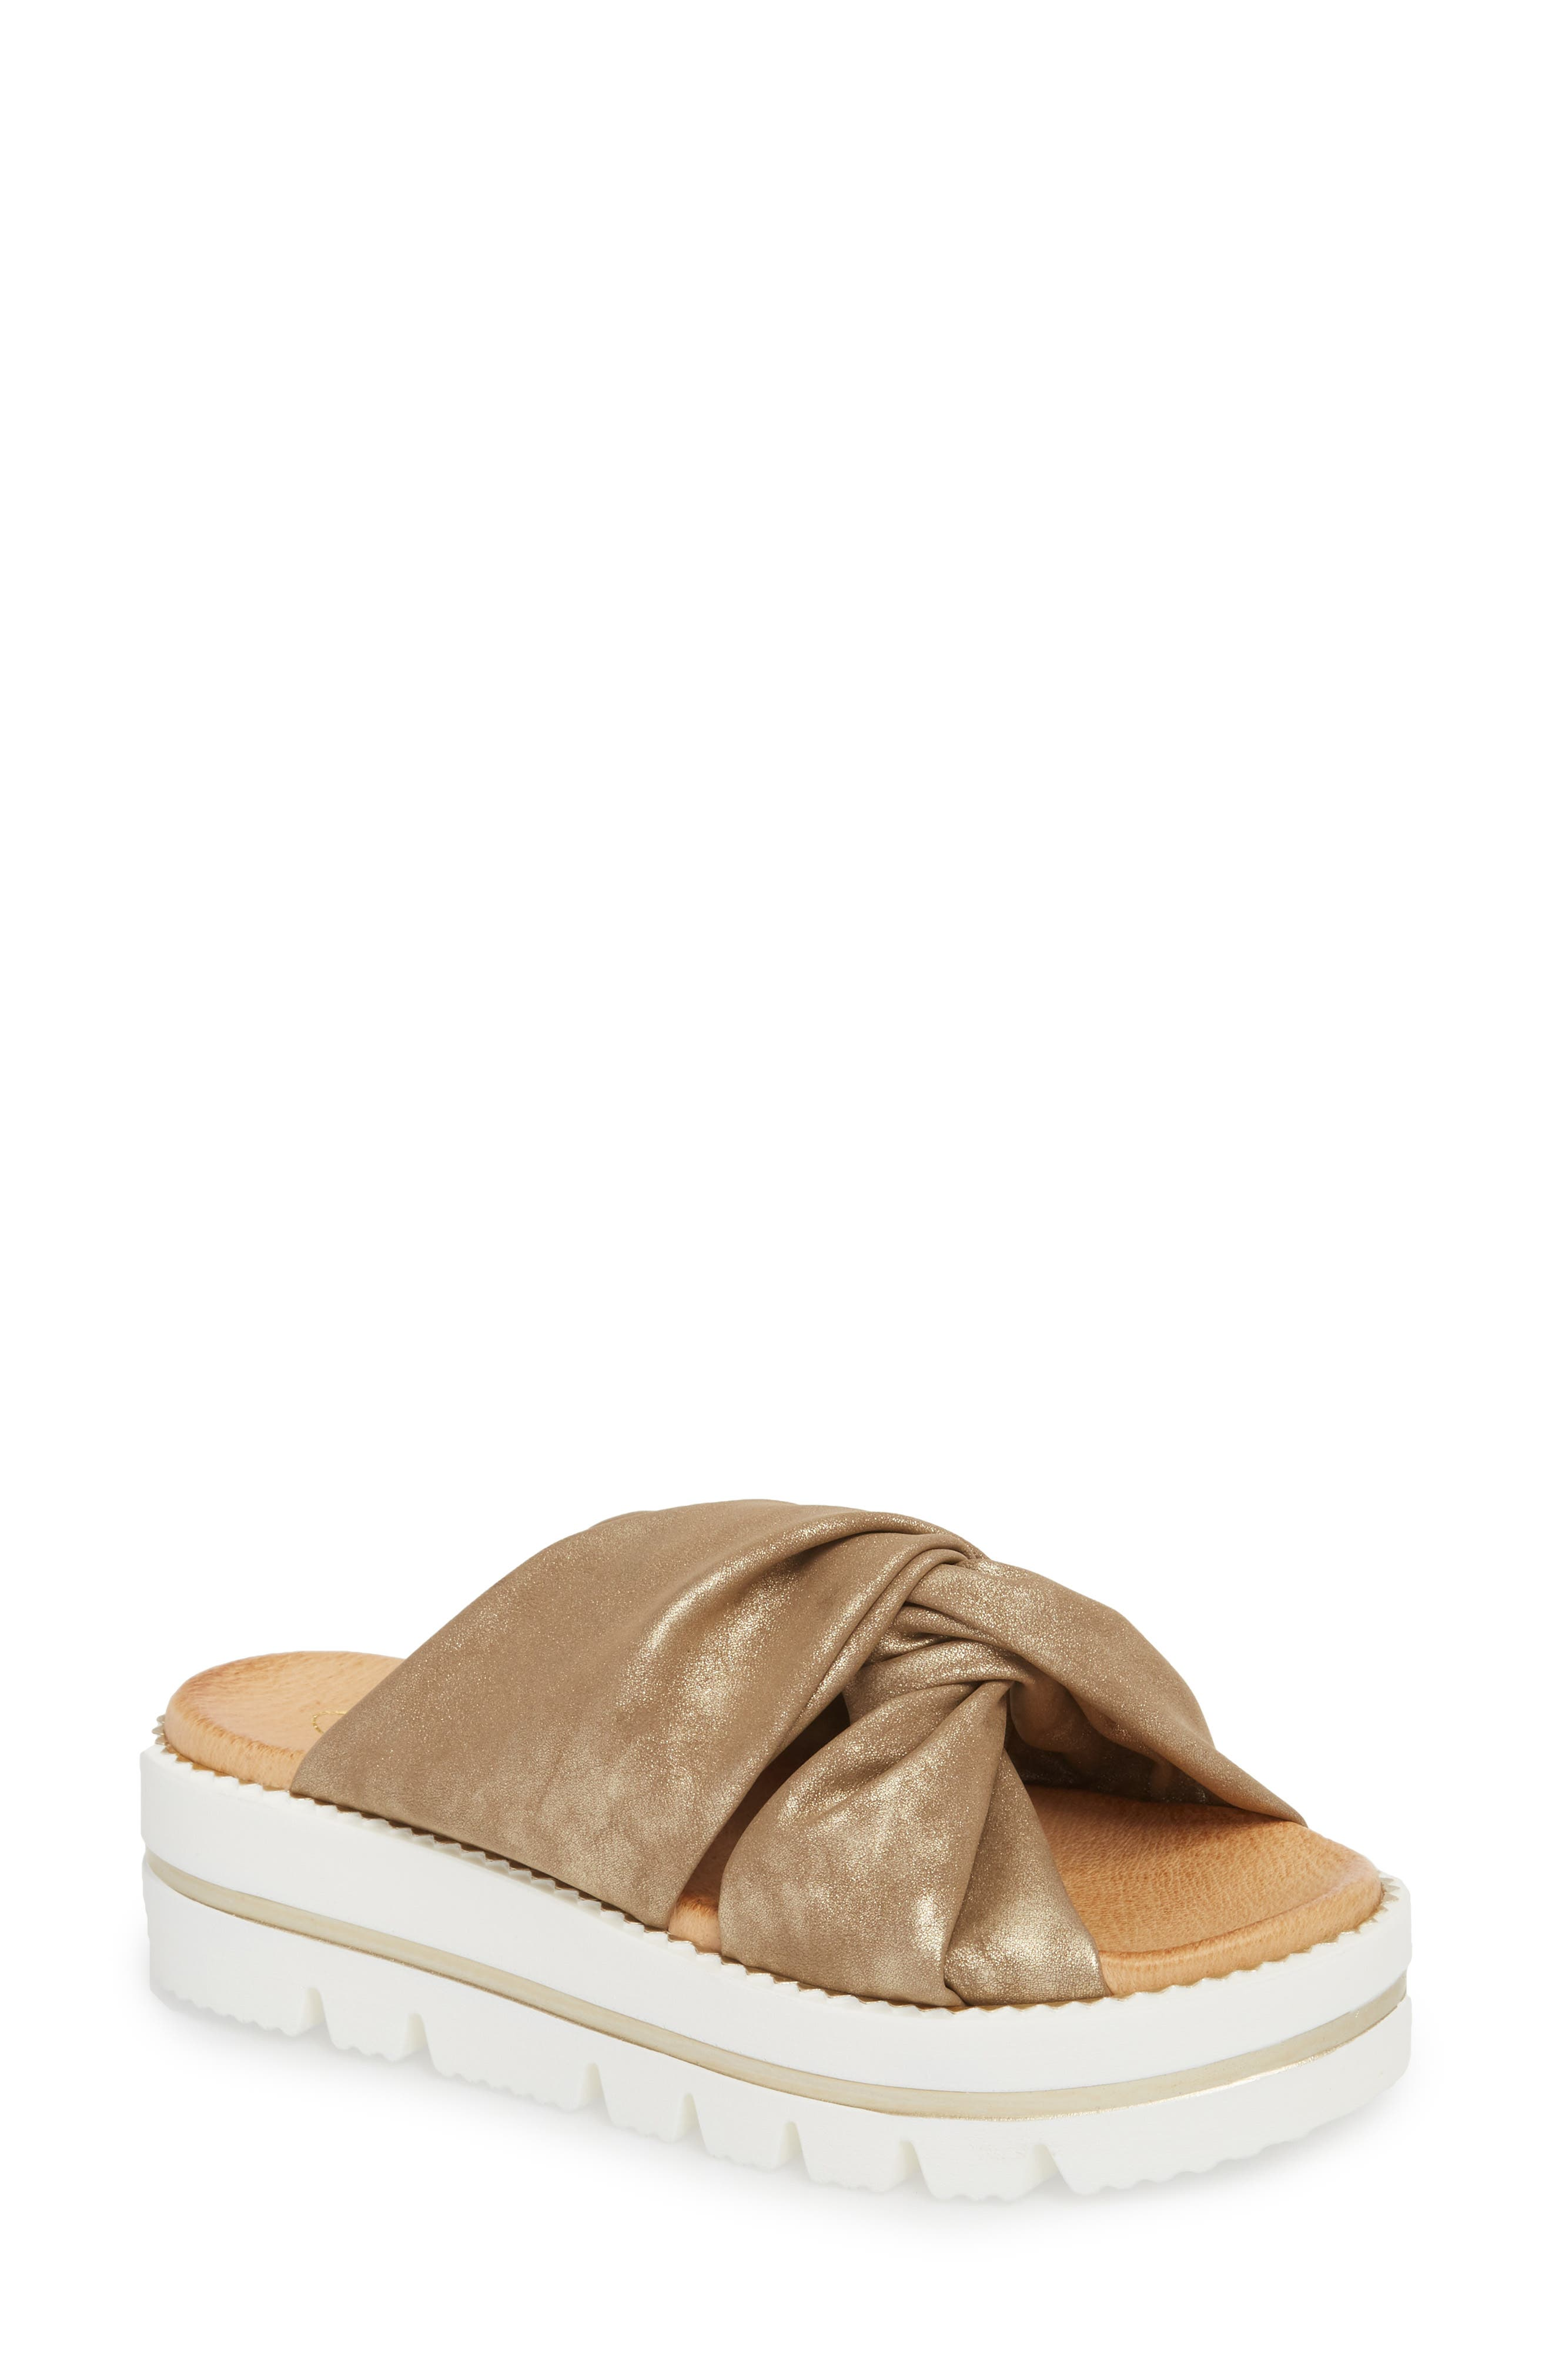 Sandy Platform Slide Sandal,                         Main,                         color, Bronze Leather